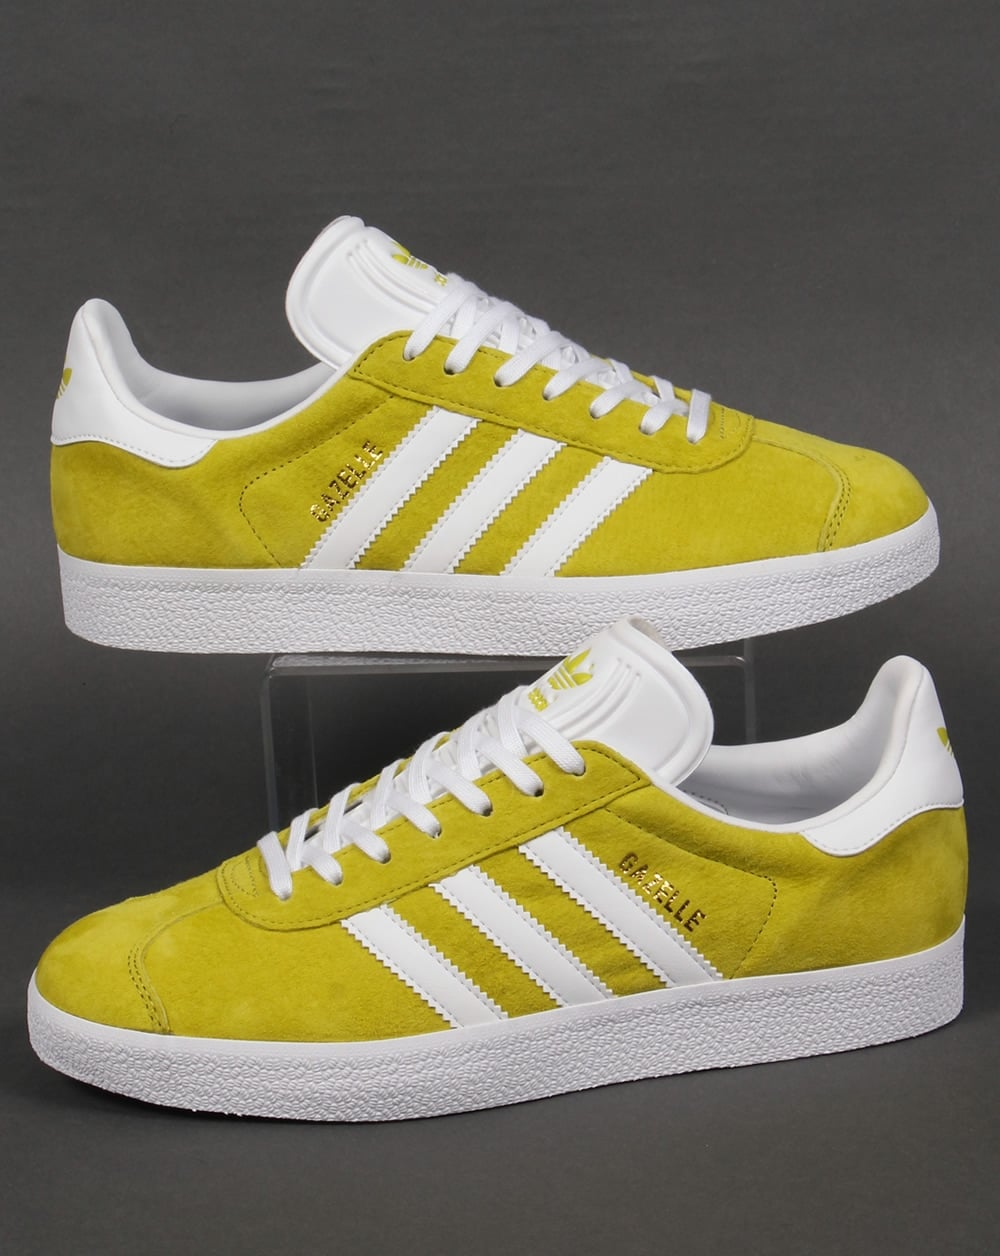 adidas gazelle yellow green